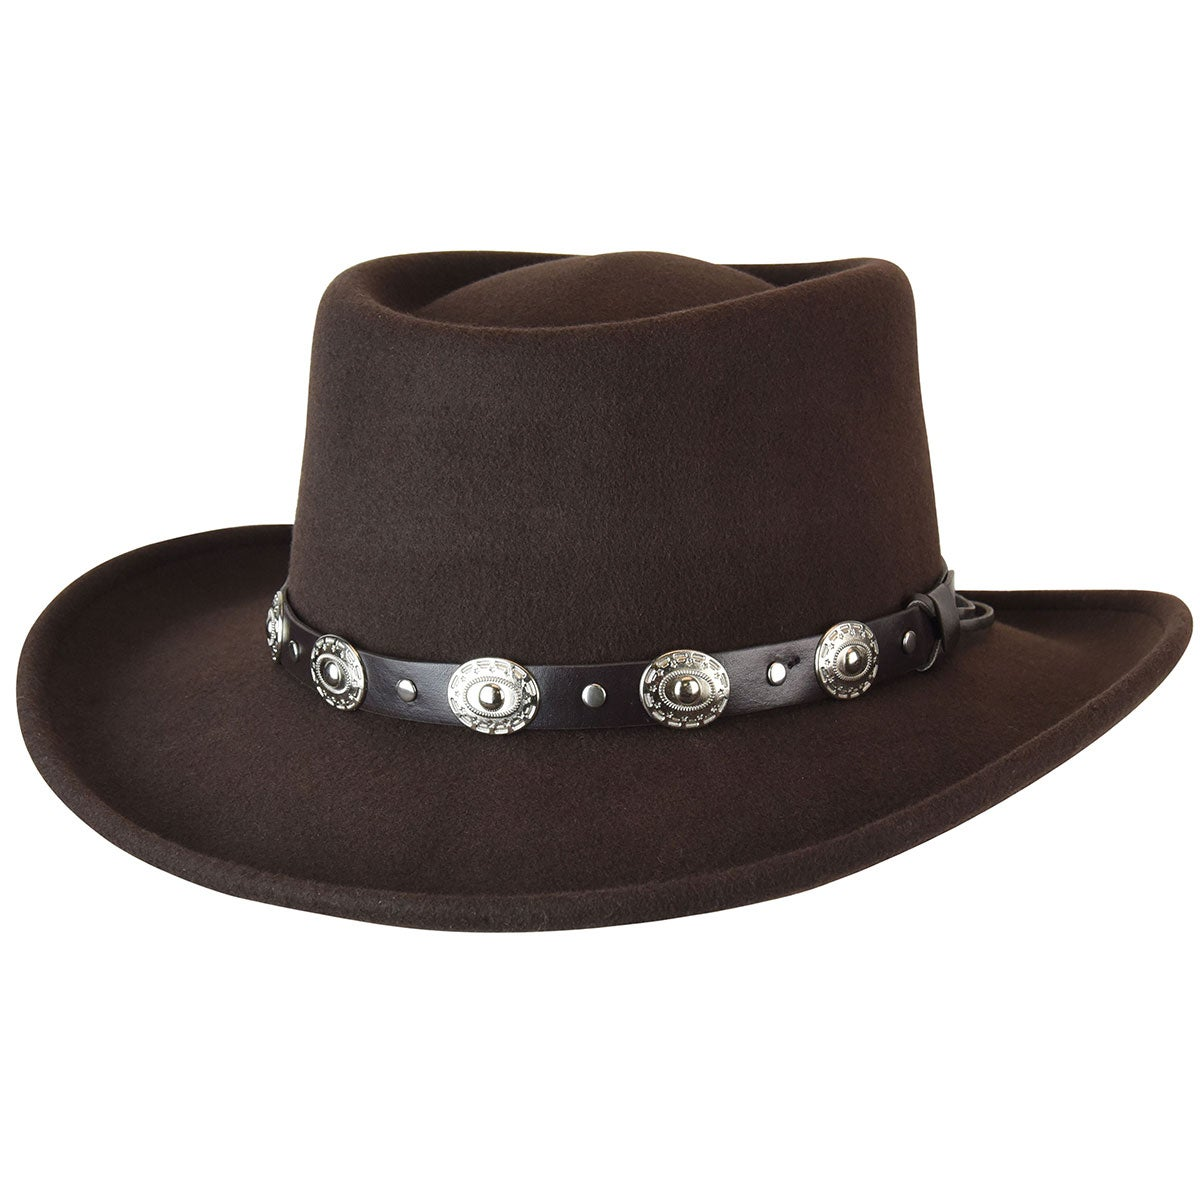 Steampunk Hats | Top Hats | Bowler Eddy Bros. Gambler $59.00 AT vintagedancer.com